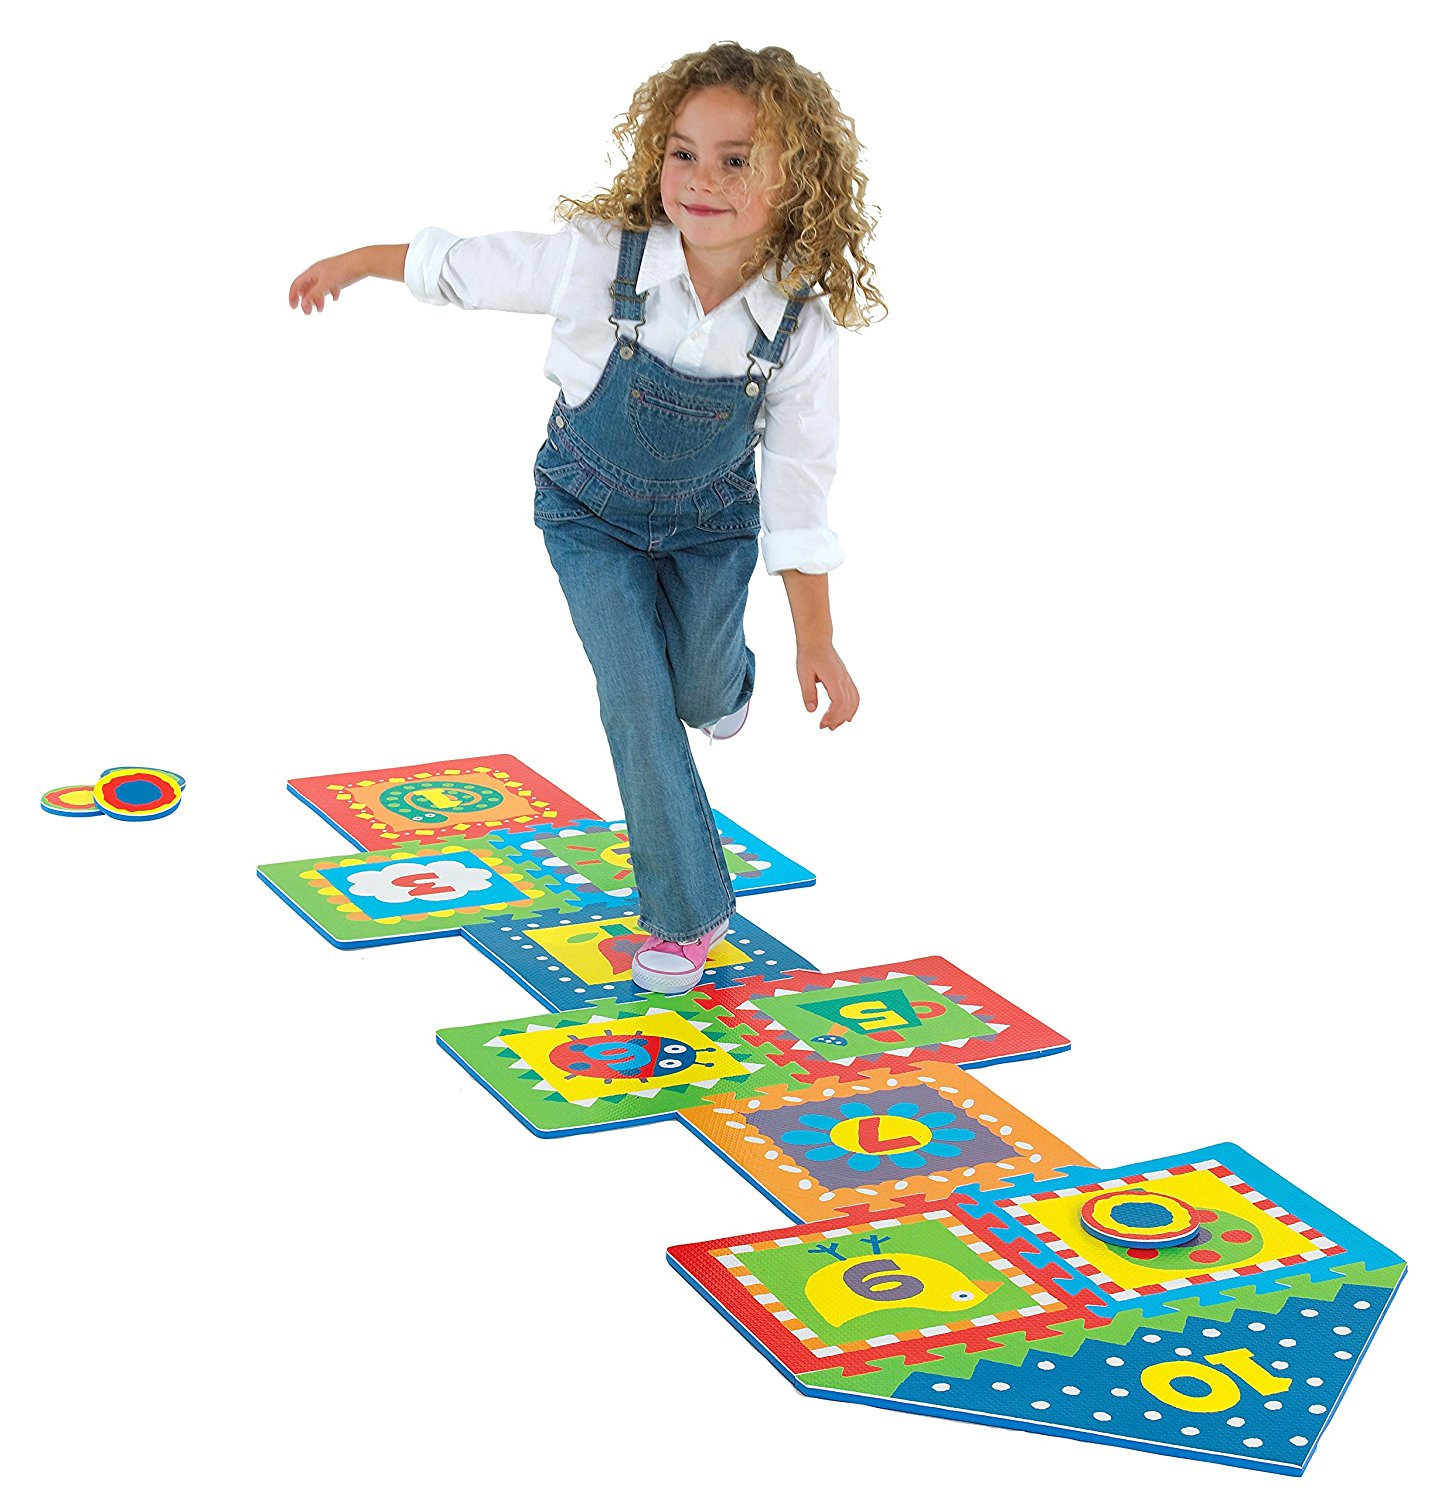 Balance Board For 2 Year Old: Fun PE Games For Kids: PE Activities Gym Exercise